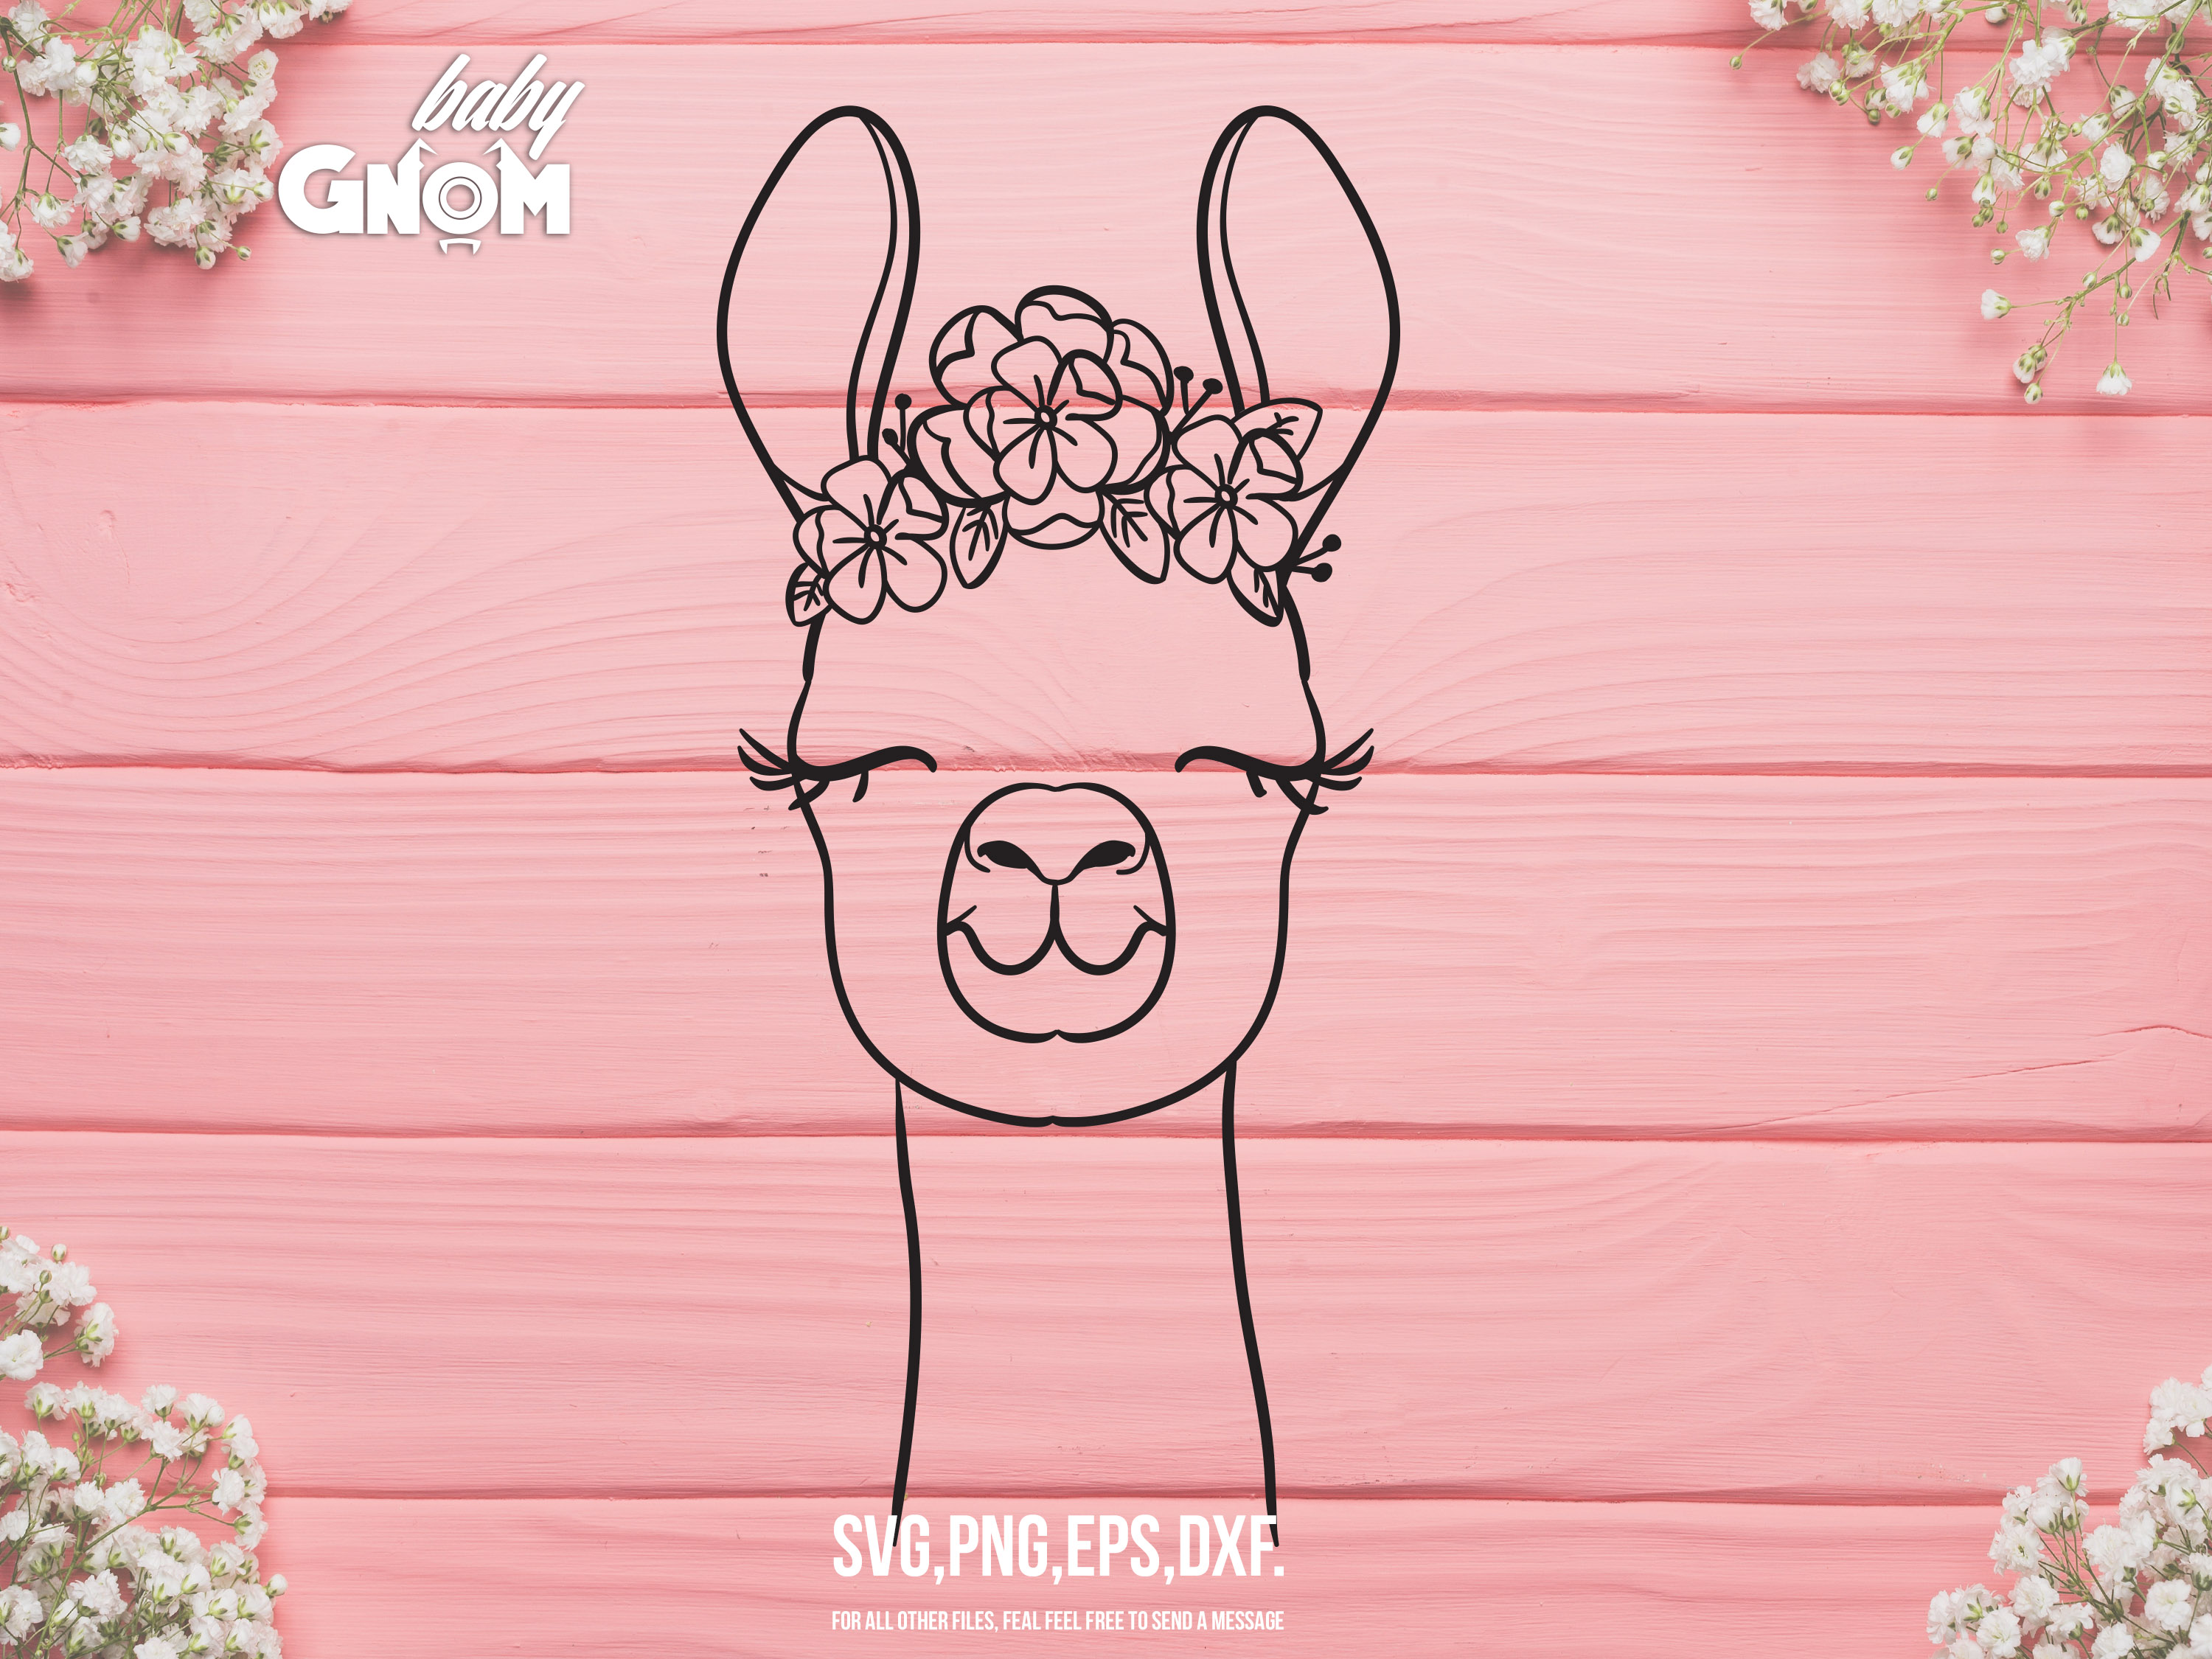 Llama With Flower Crown Graphic By Babygnom Creative Fabrica